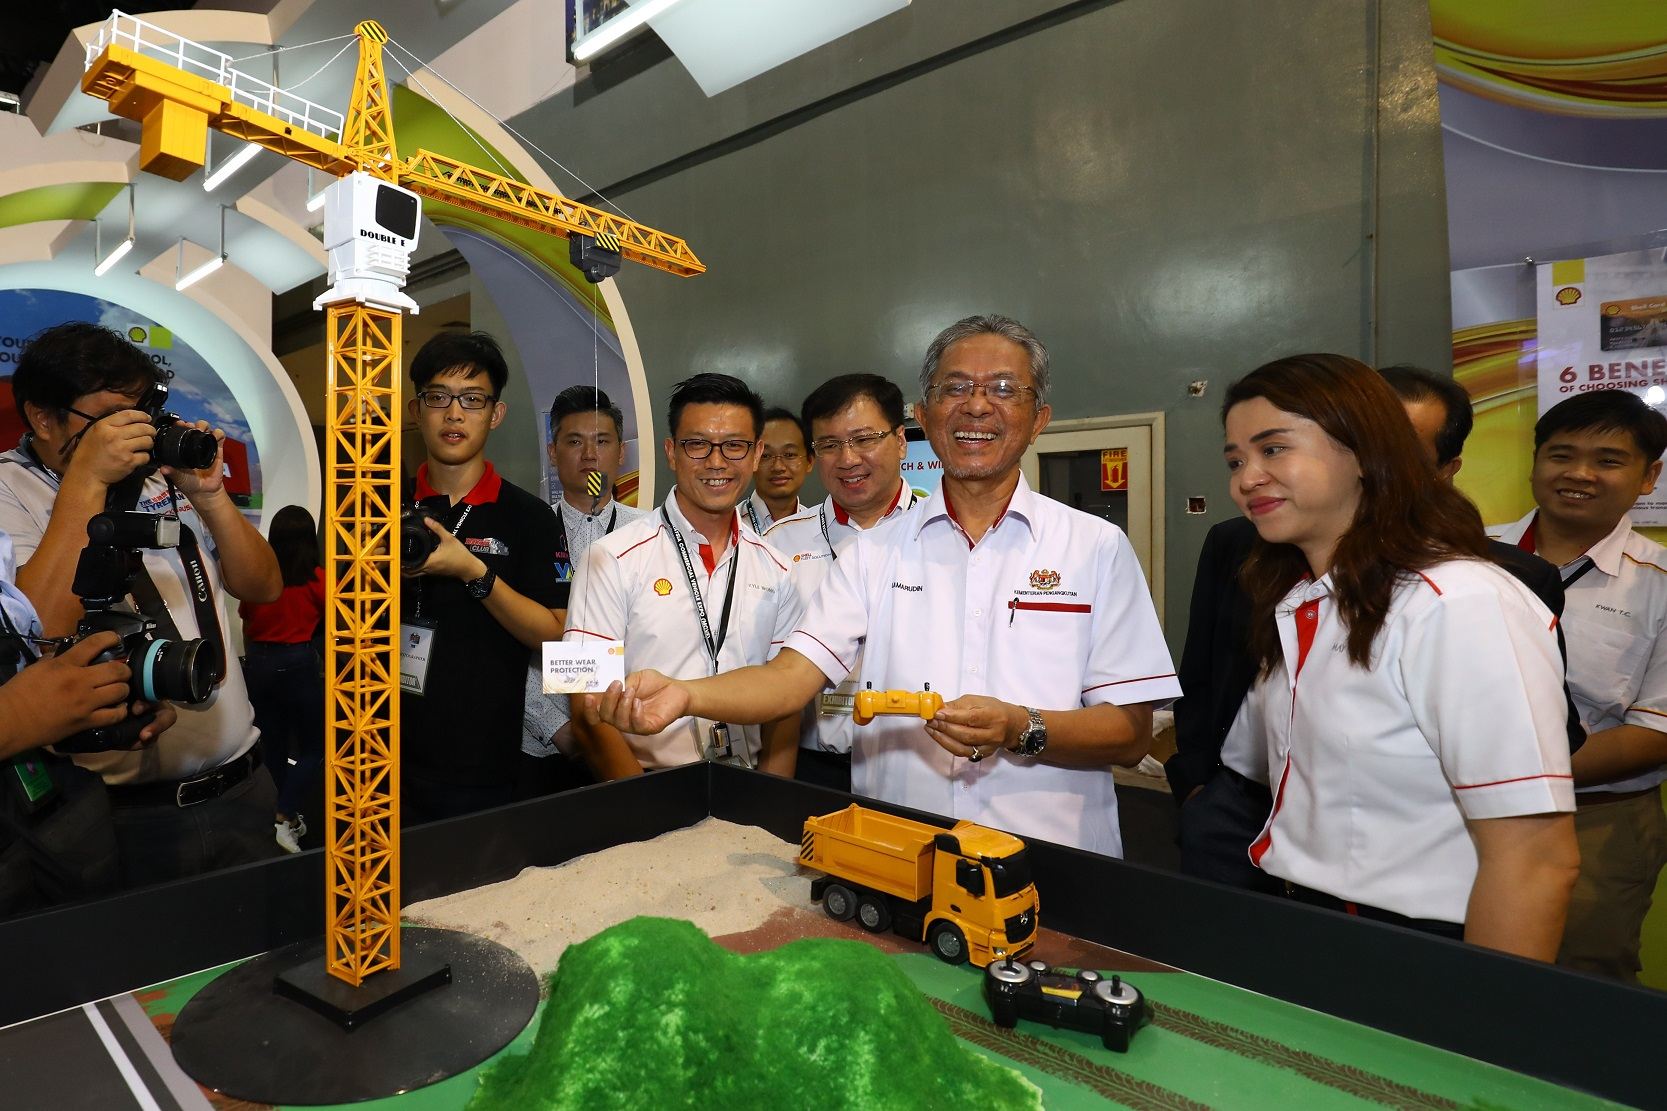 YB Deputy Minister of Transport (2nd from right) trying out the Shell Heavy Duty Challenge